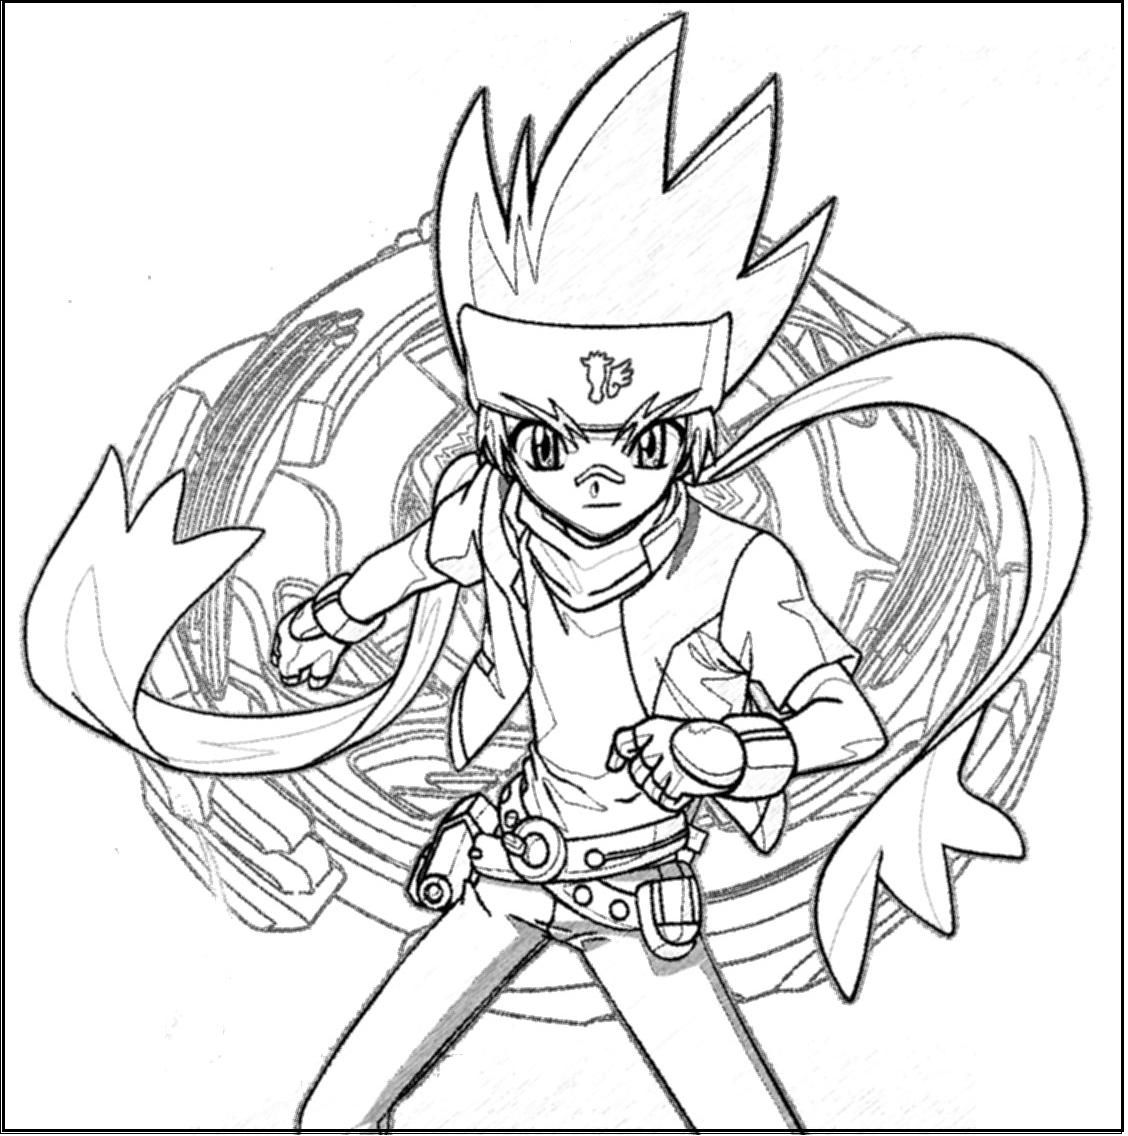 Free Printable Beyblade Coloring Pages For Kids | Pinterest